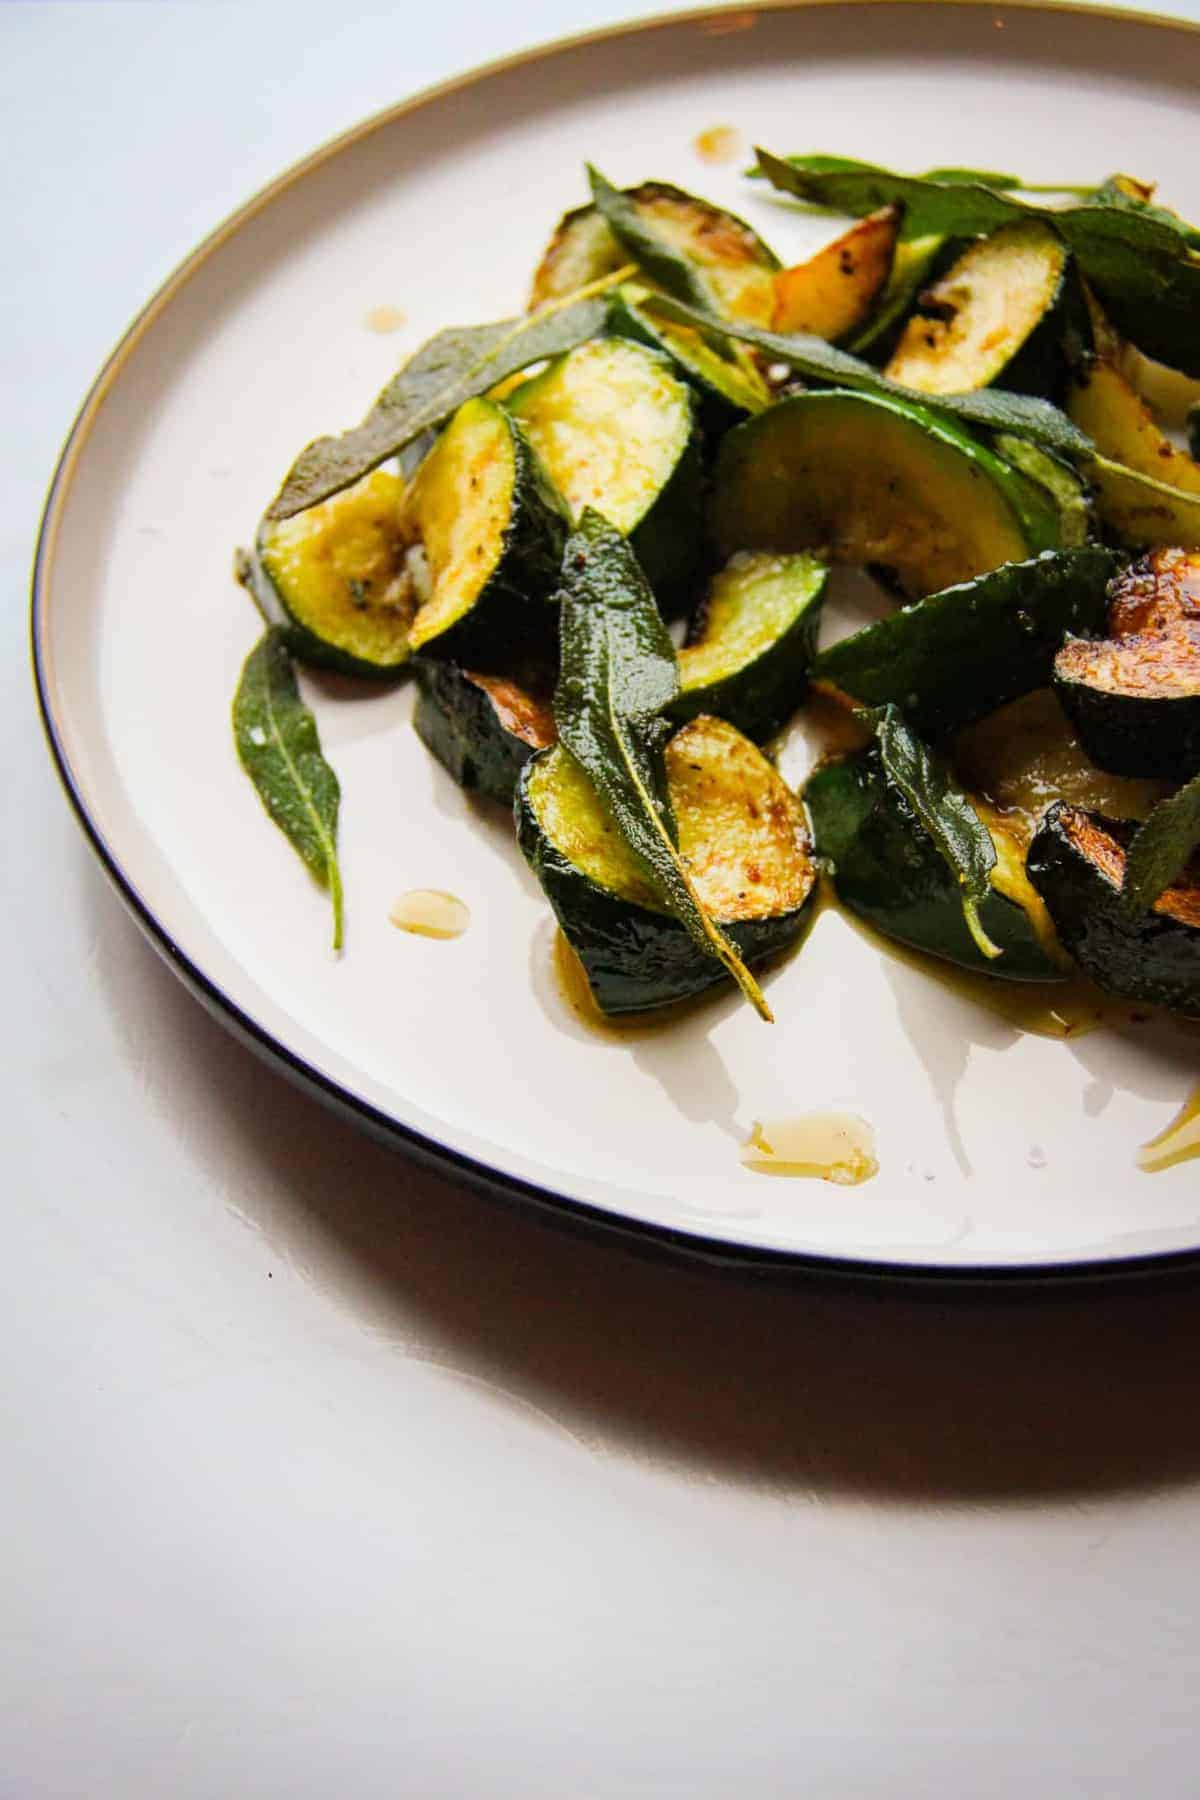 Courgette sage and garlic on a plate.